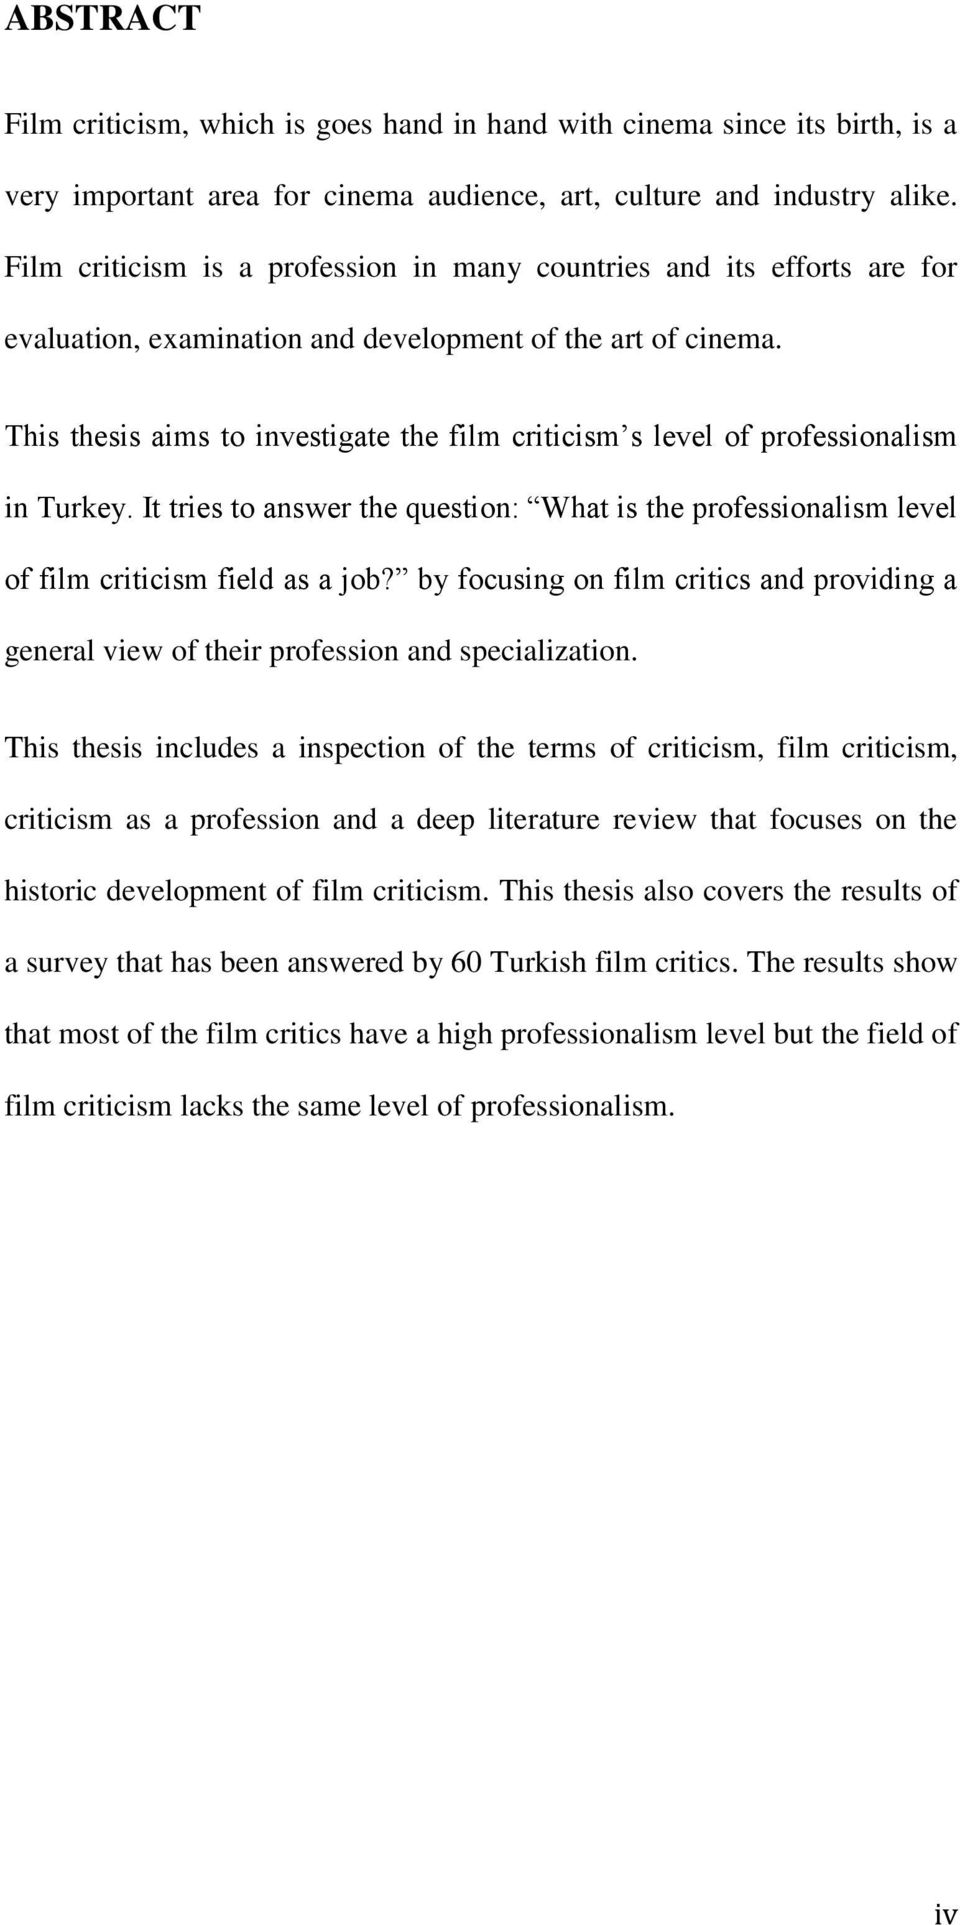 This thesis aims to investigate the film criticism s level of professionalism in Turkey. It tries to answer the question: What is the professionalism level of film criticism field as a job?